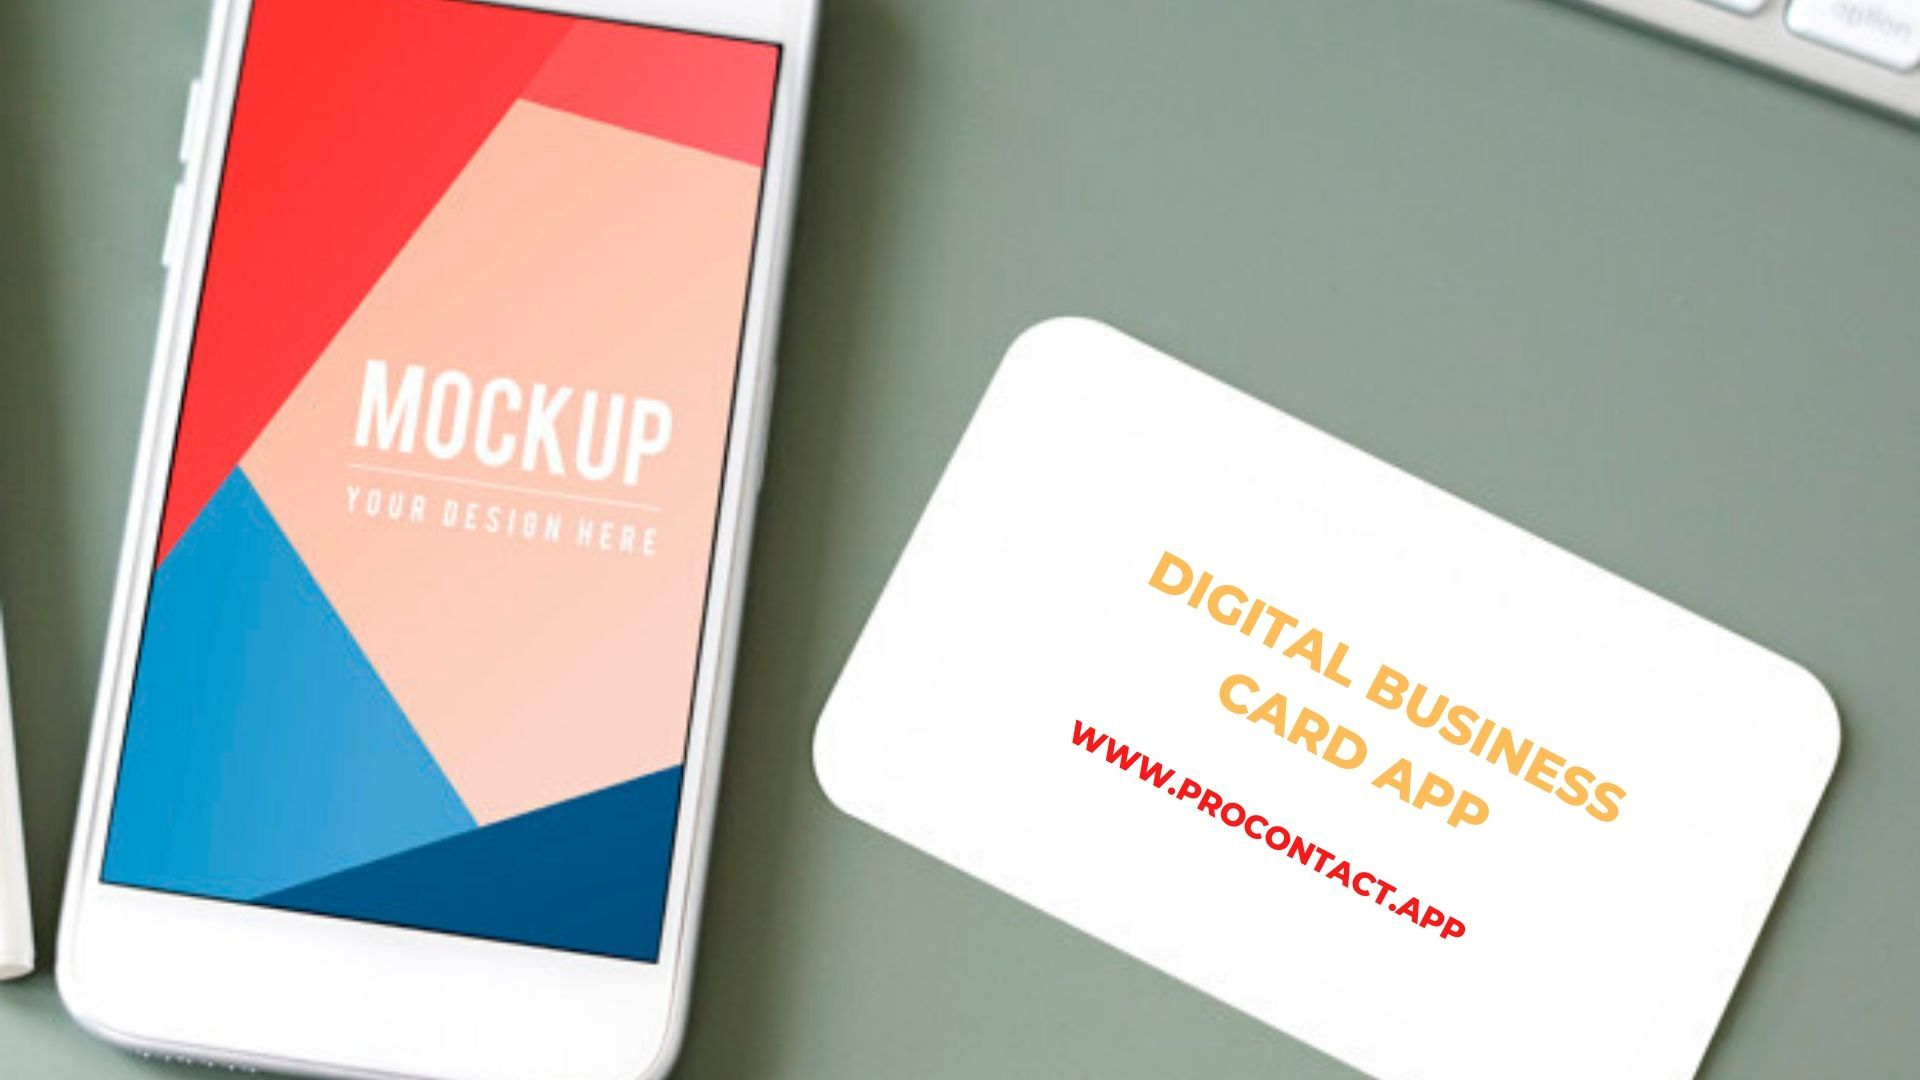 Download Procontact App And Know How To Use It Digital Business Card Business Card App App